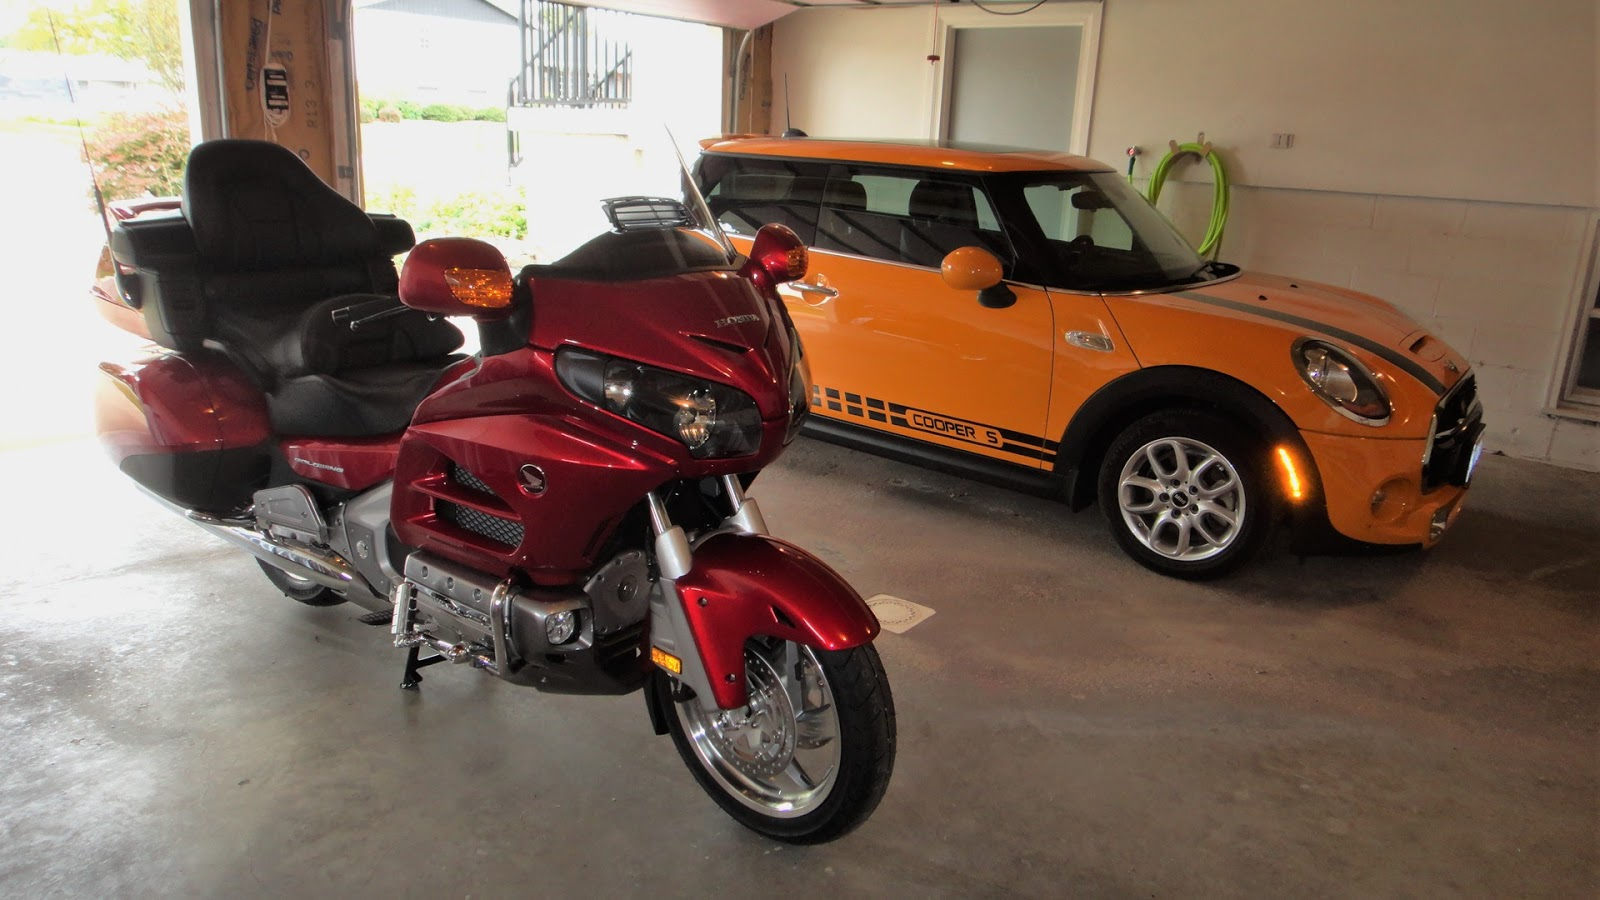 hight resolution of here is my latest addition to my garage a pretty terrific pair of vehicles to say the least but to the point of this post is the gps that i have been